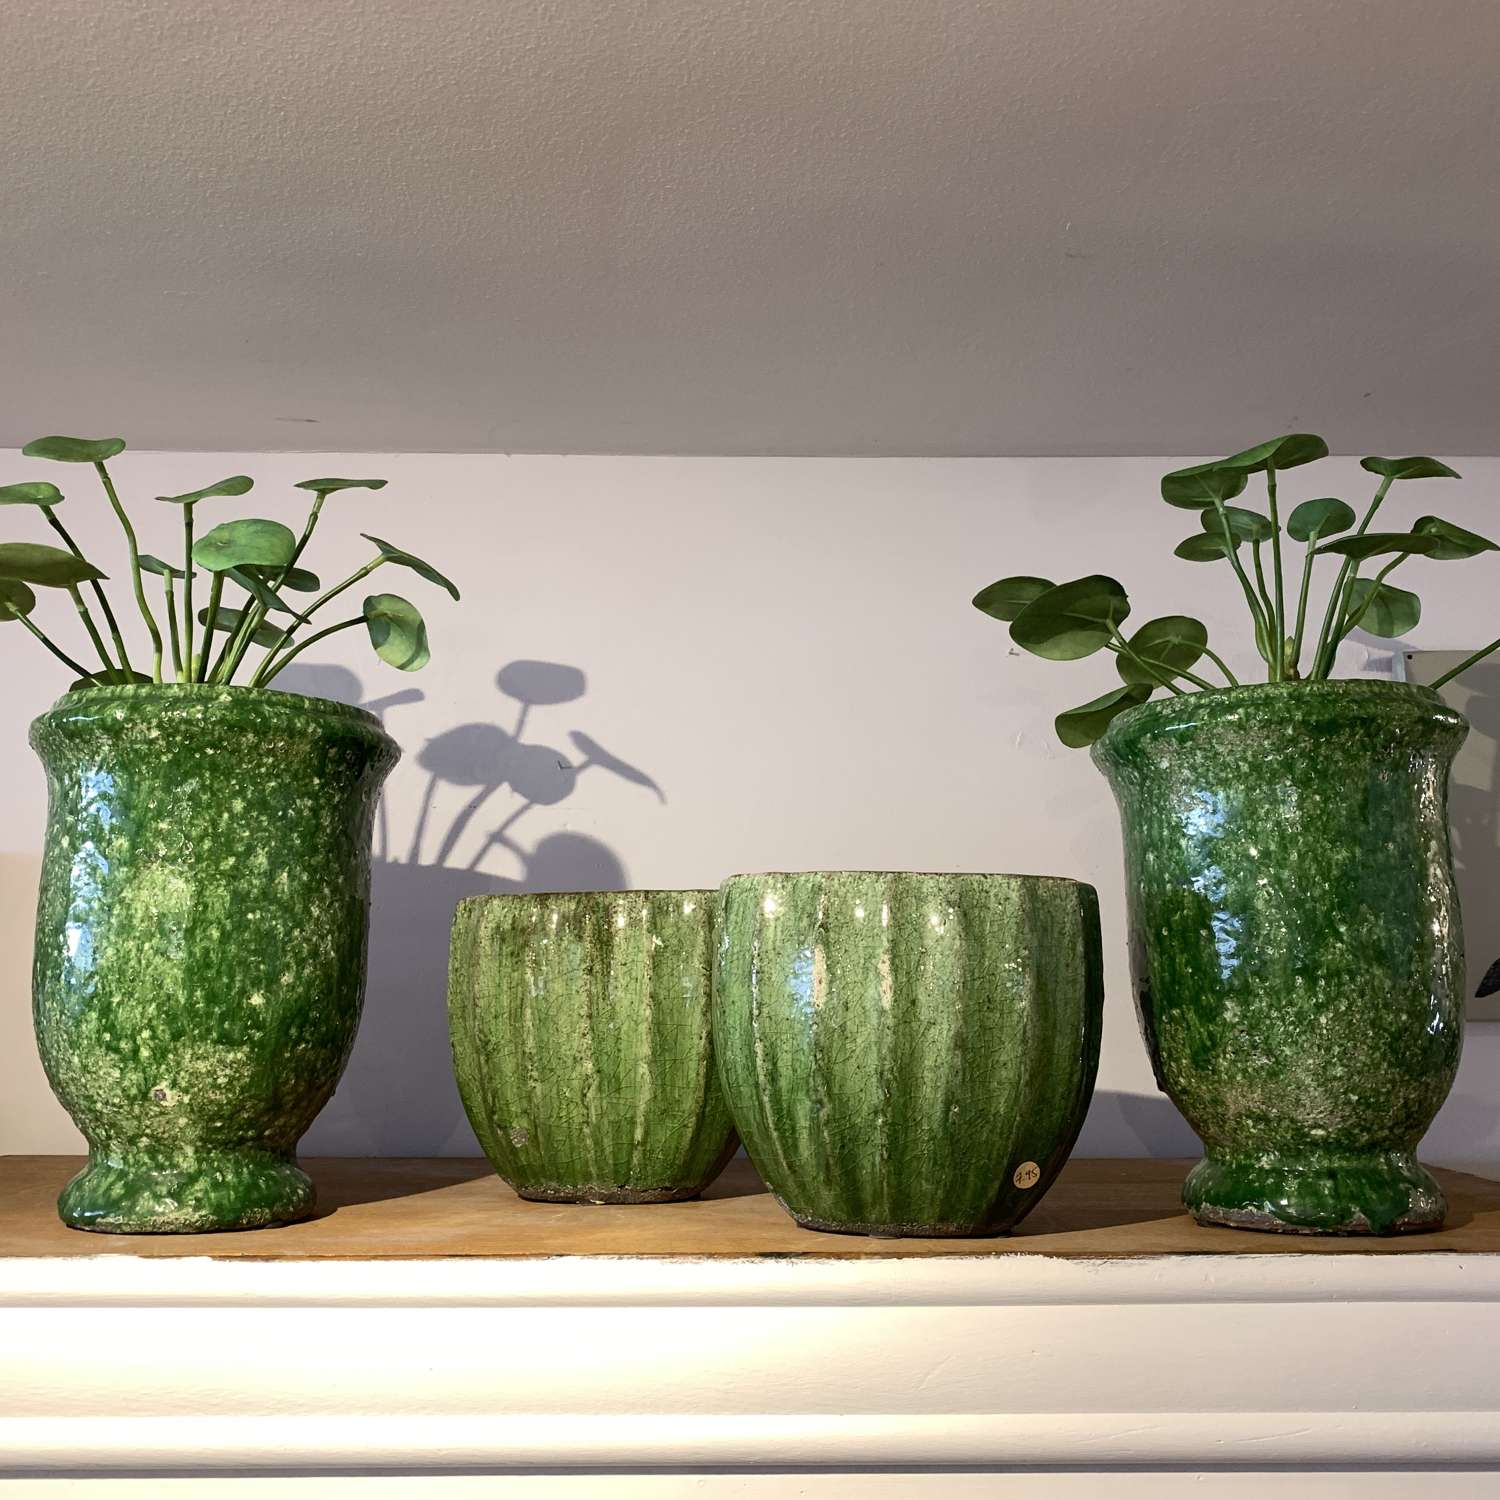 Provencal pots in two sizes